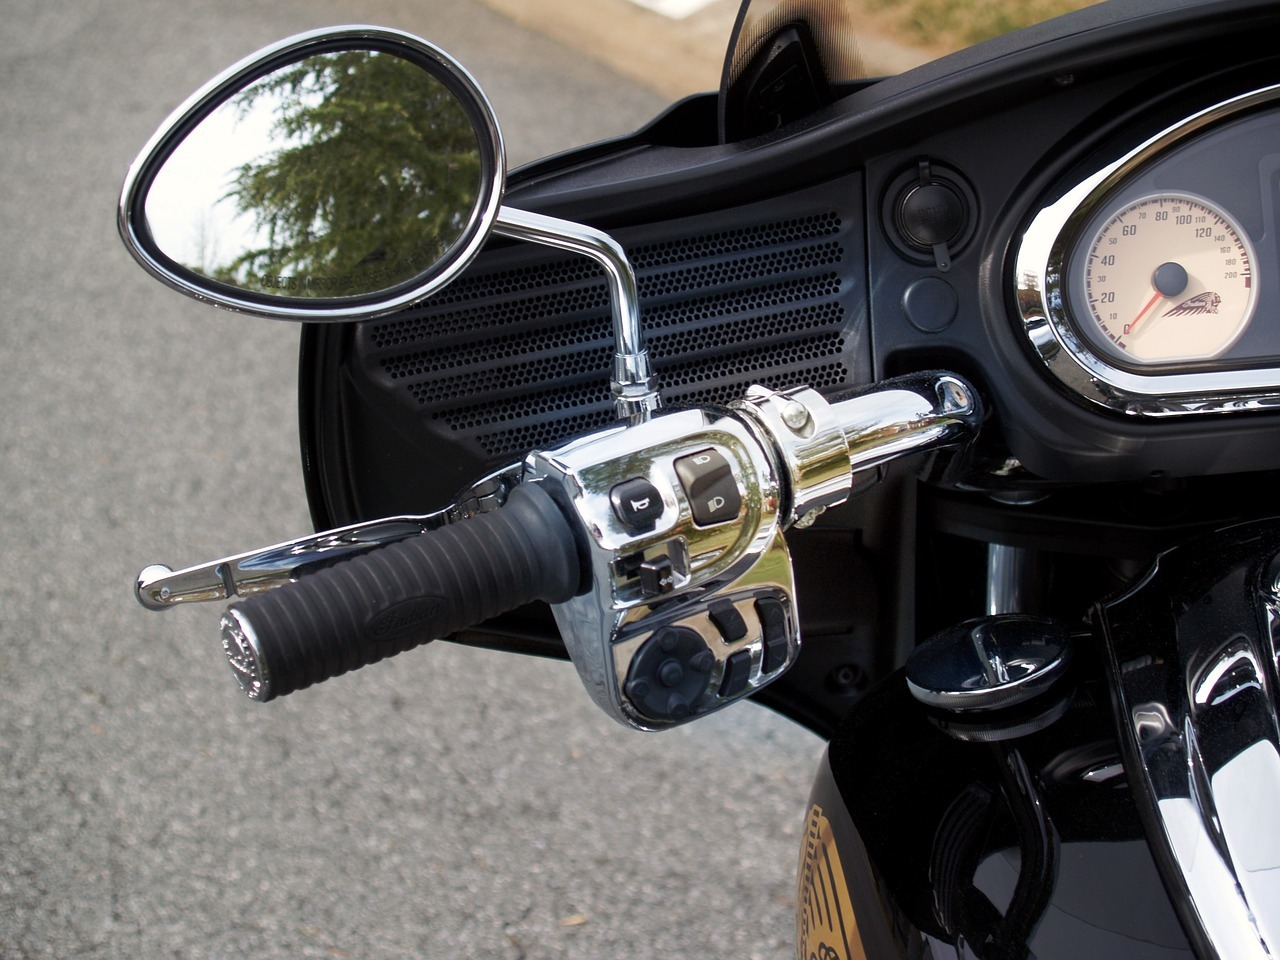 throttle and mirror